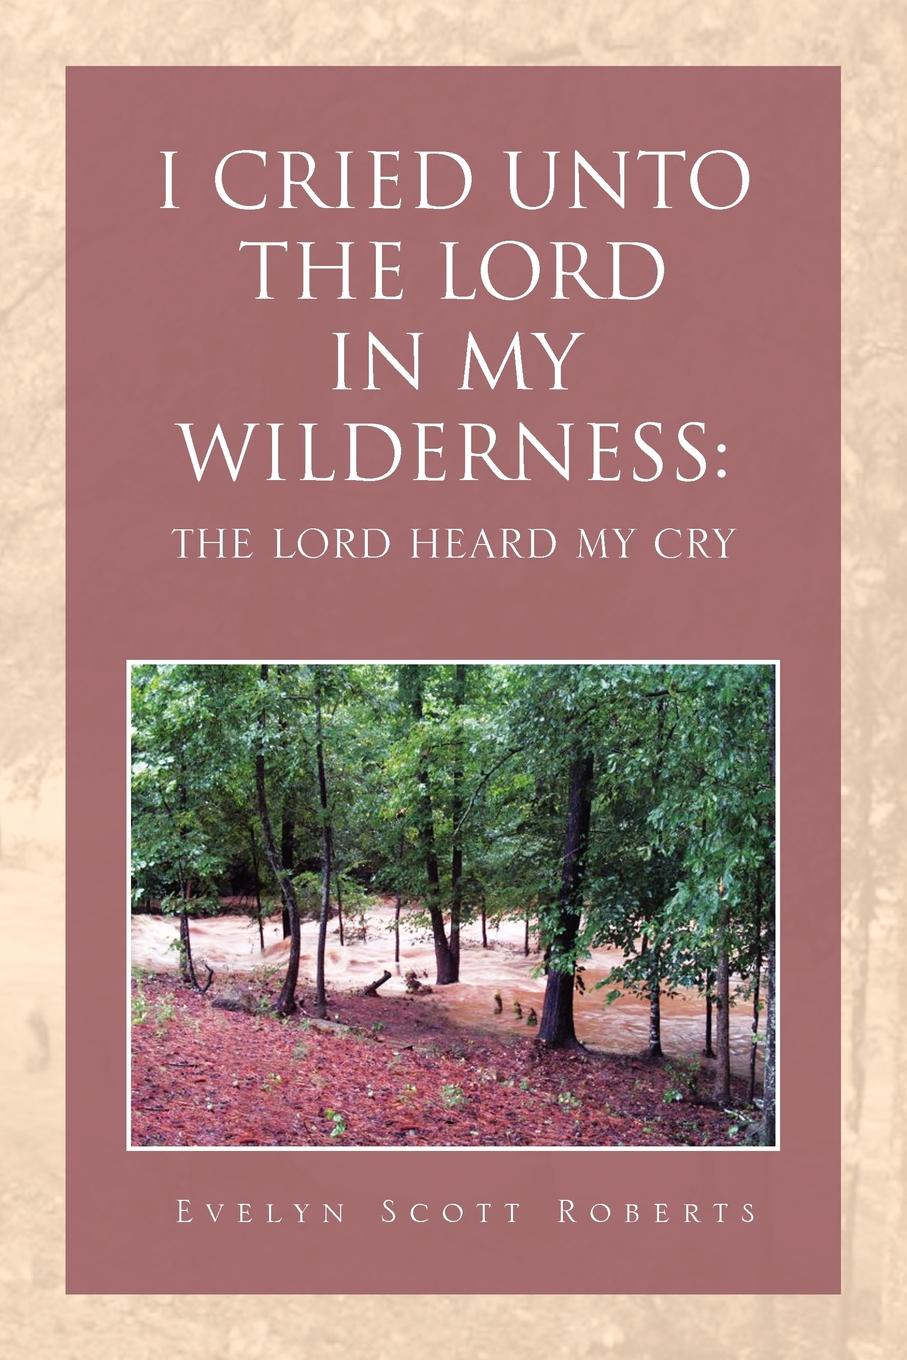 Evelyn Scott Roberts I CRIED UNTO THE LORD IN MY WILDERNESS. HEARD CRY